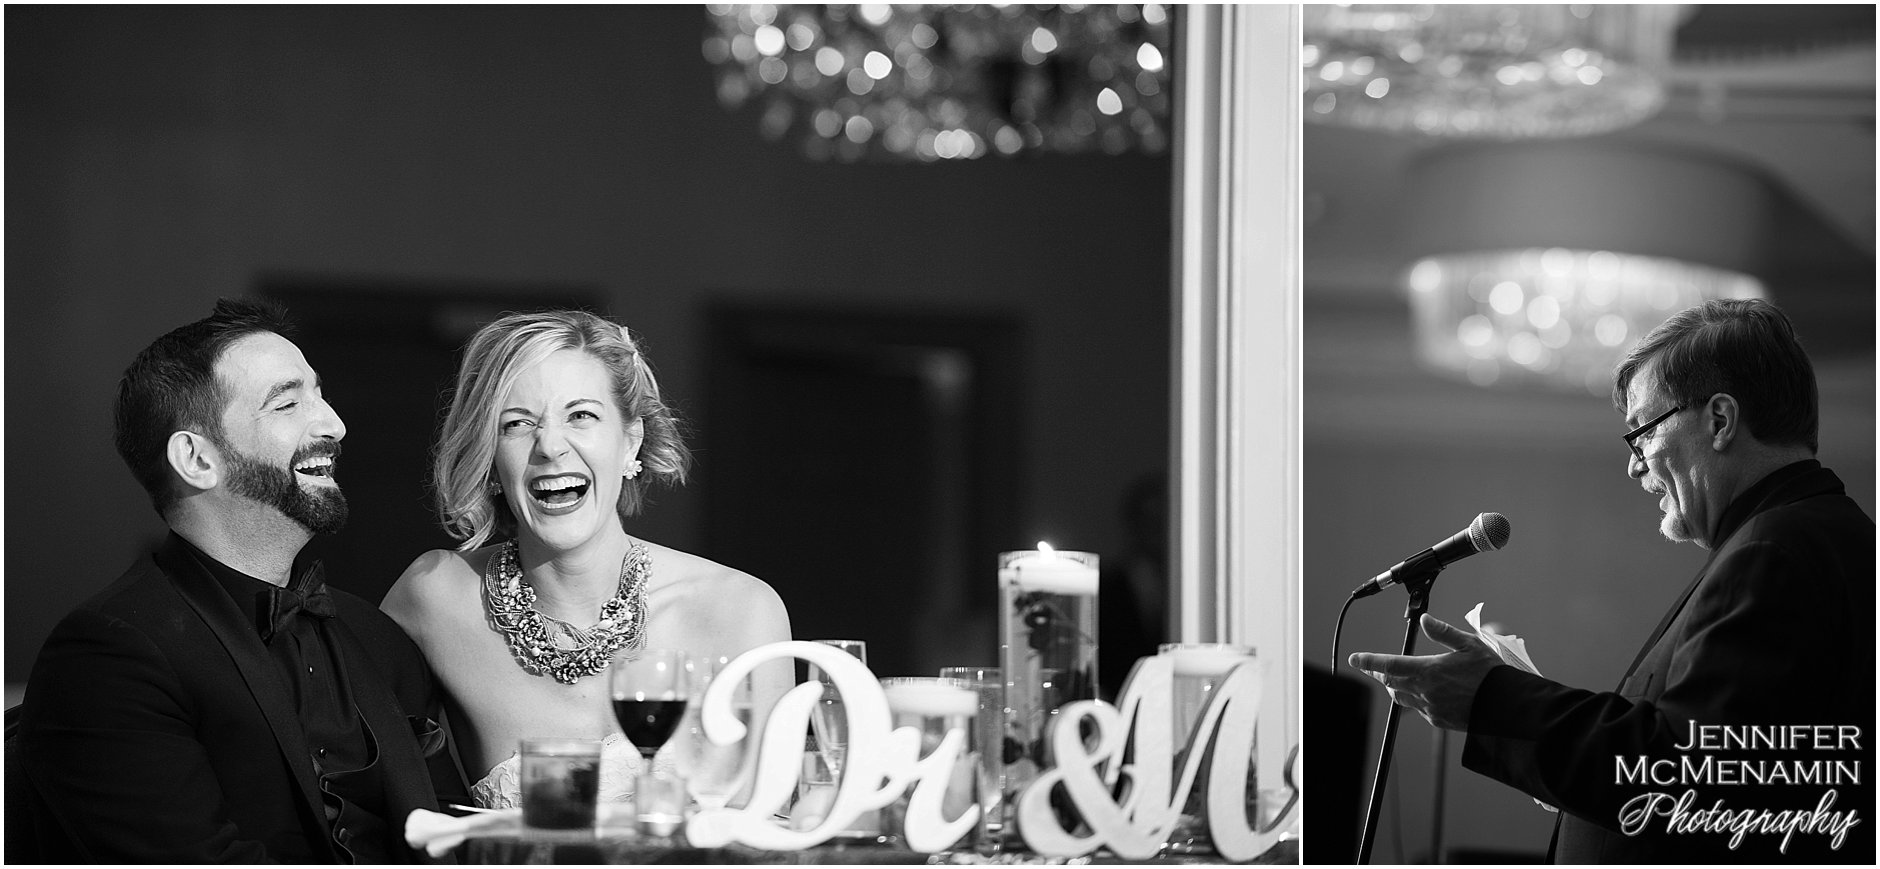 062-MorrisPustilnik_02771bw-0625_Jennifer-McMenamin-Photography-Royal-Sonesta-Harbor-Court-Hotel-wedding-Baltimore-wedding-photographer